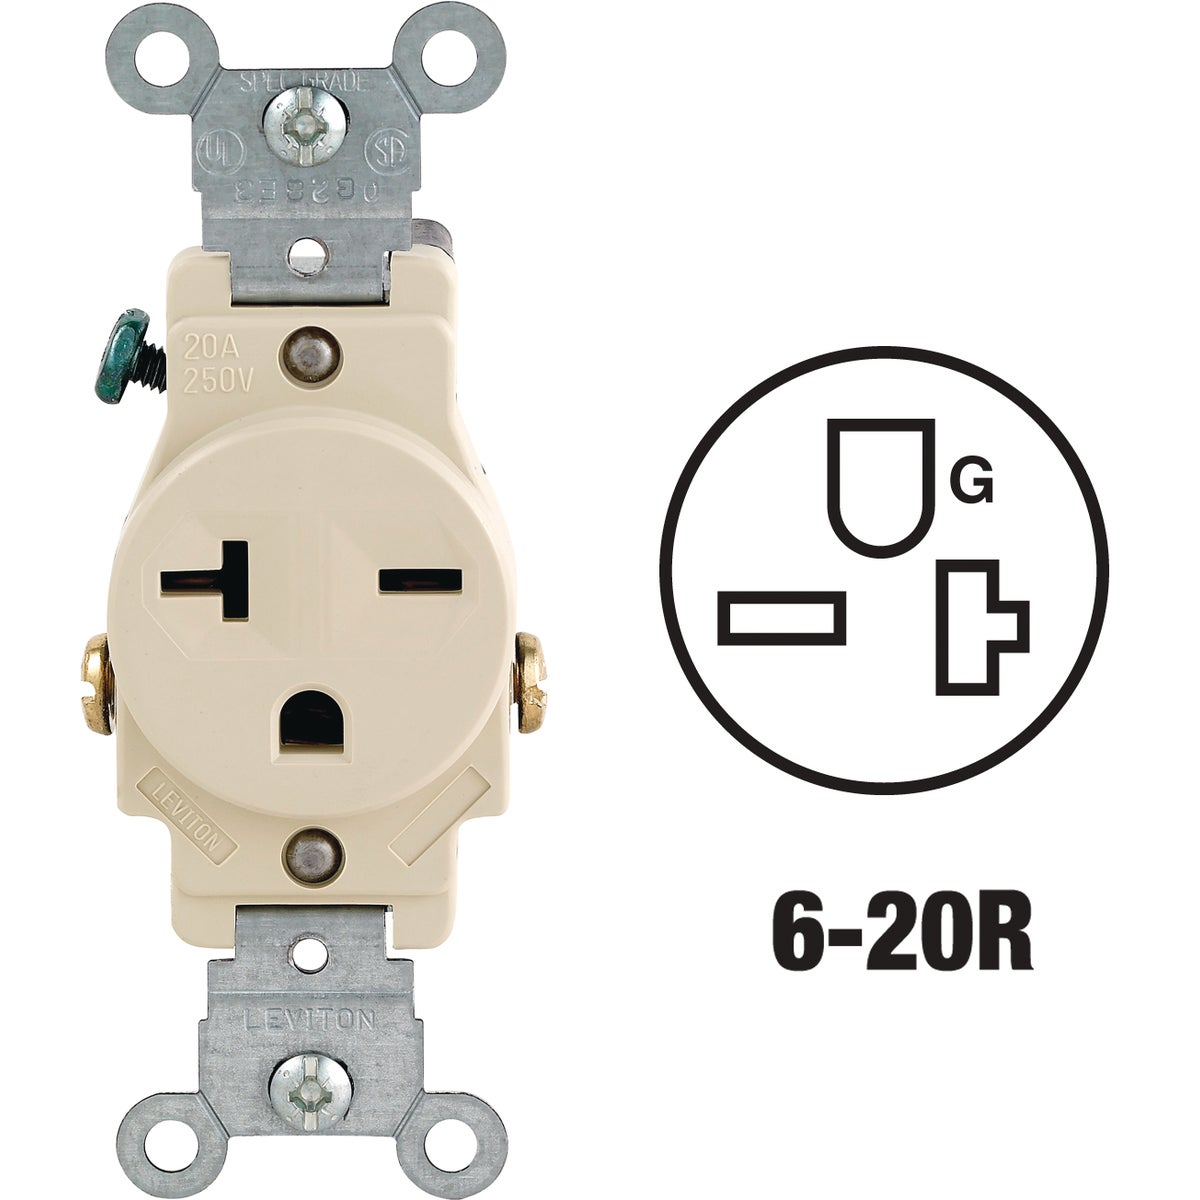 Leviton IV SINGLE OUTLET 5821ISP